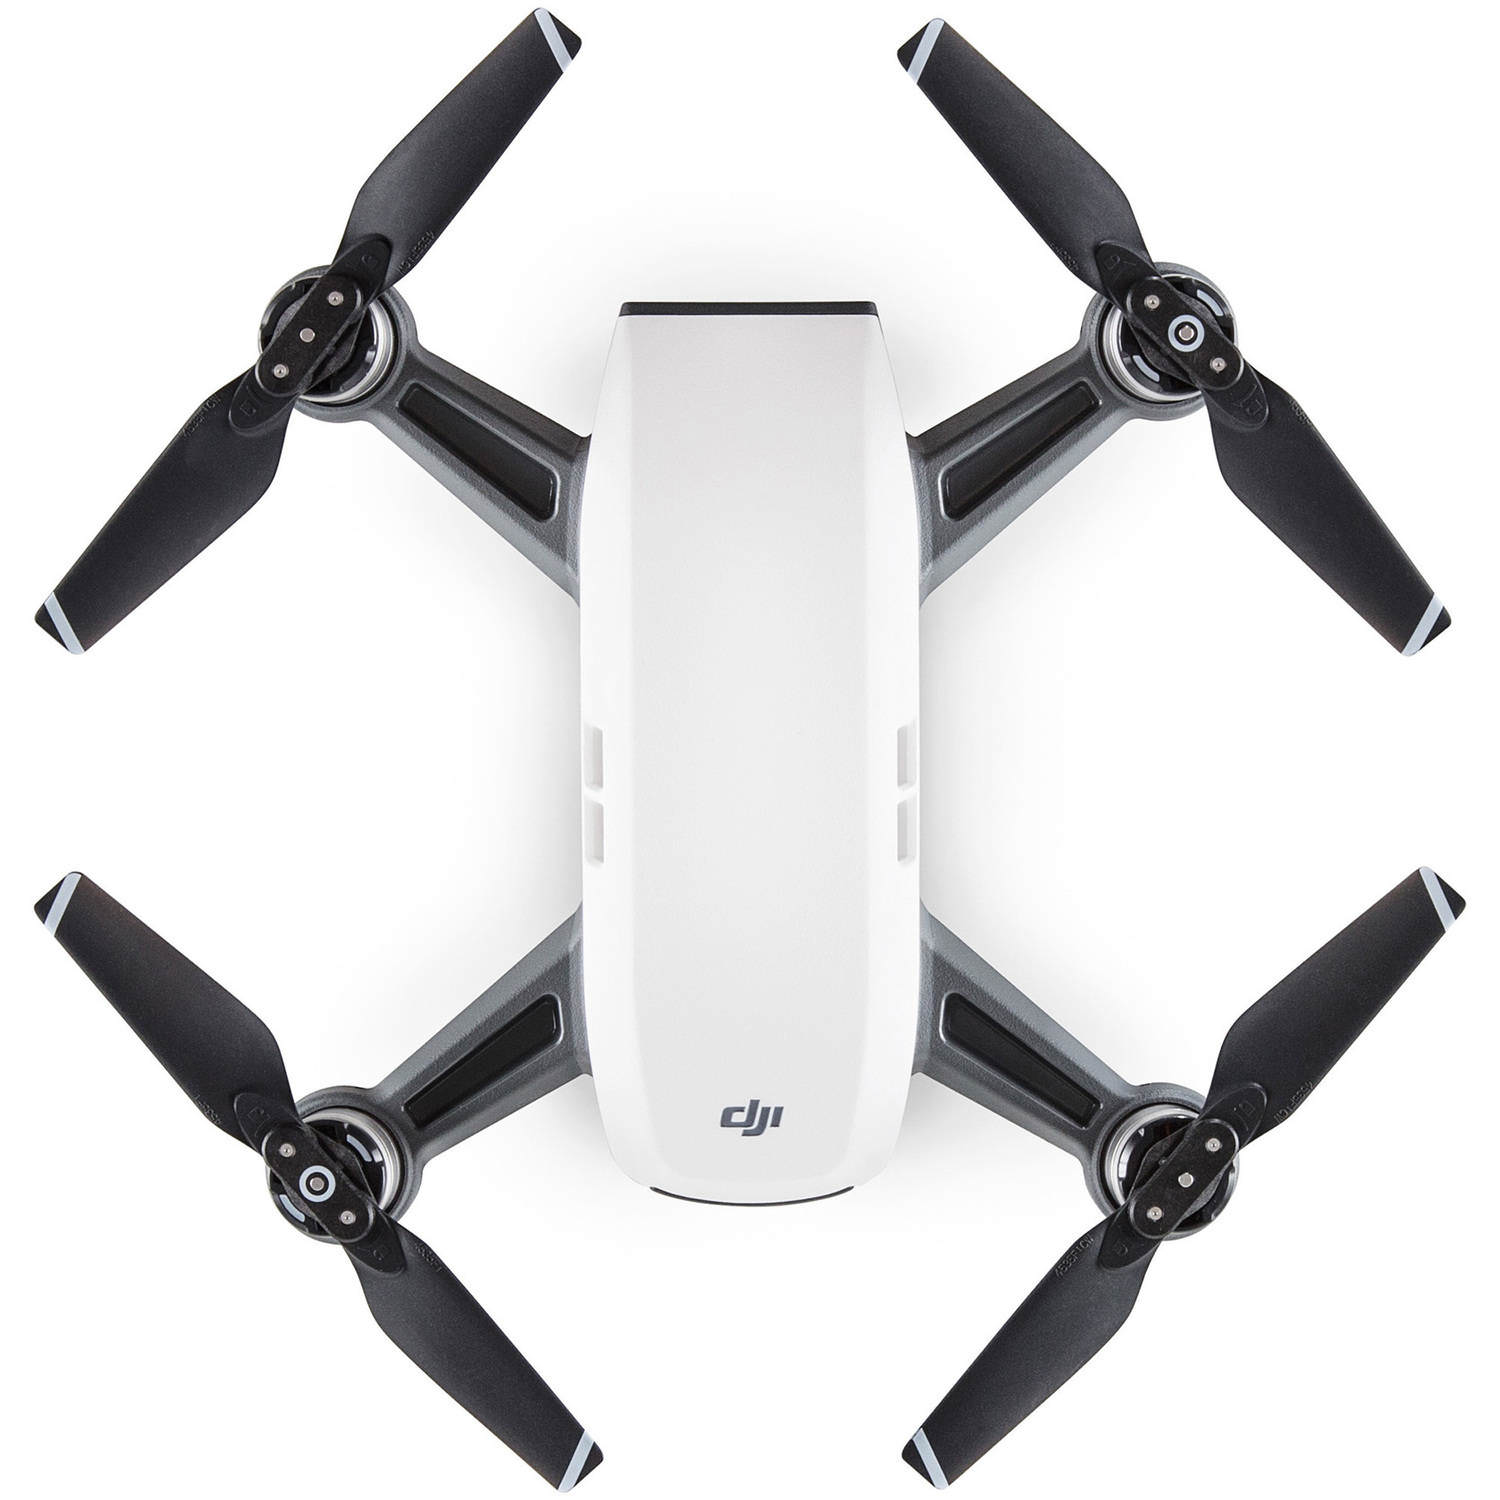 DJI SPARK Intelligent Wi-Fi Quadcopter Drone 12MP Camera 1080p Video Alpine White